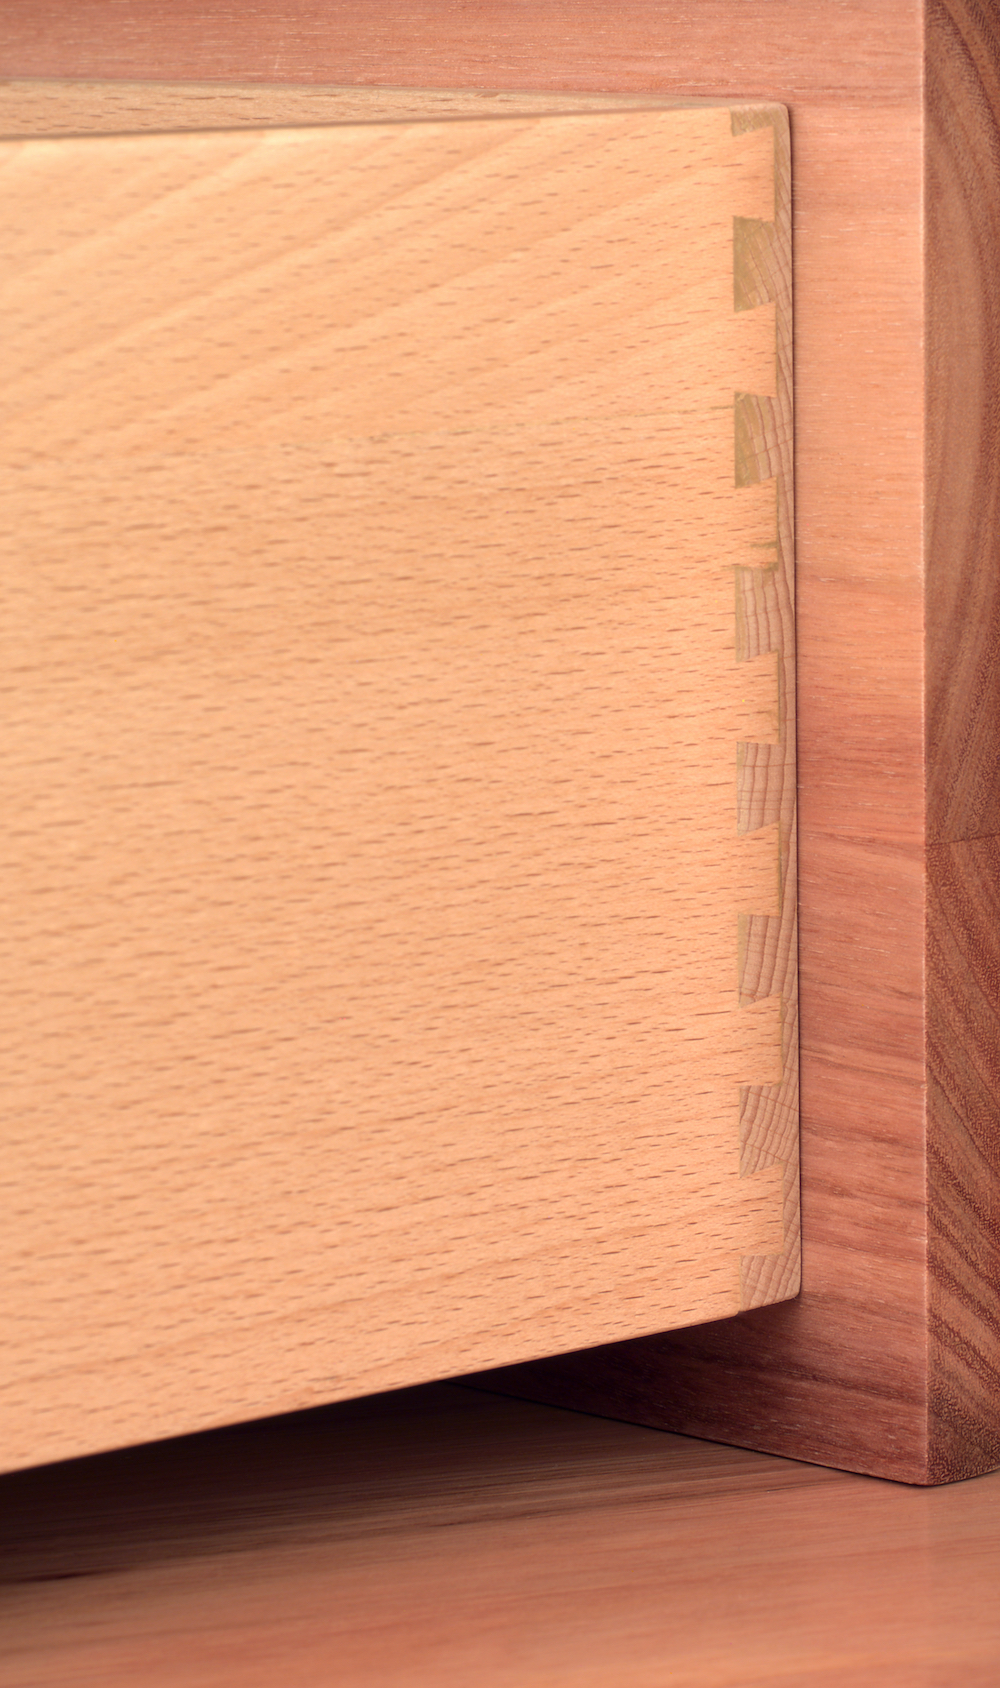 Detail Image of Dovetailed Beech Drawer.